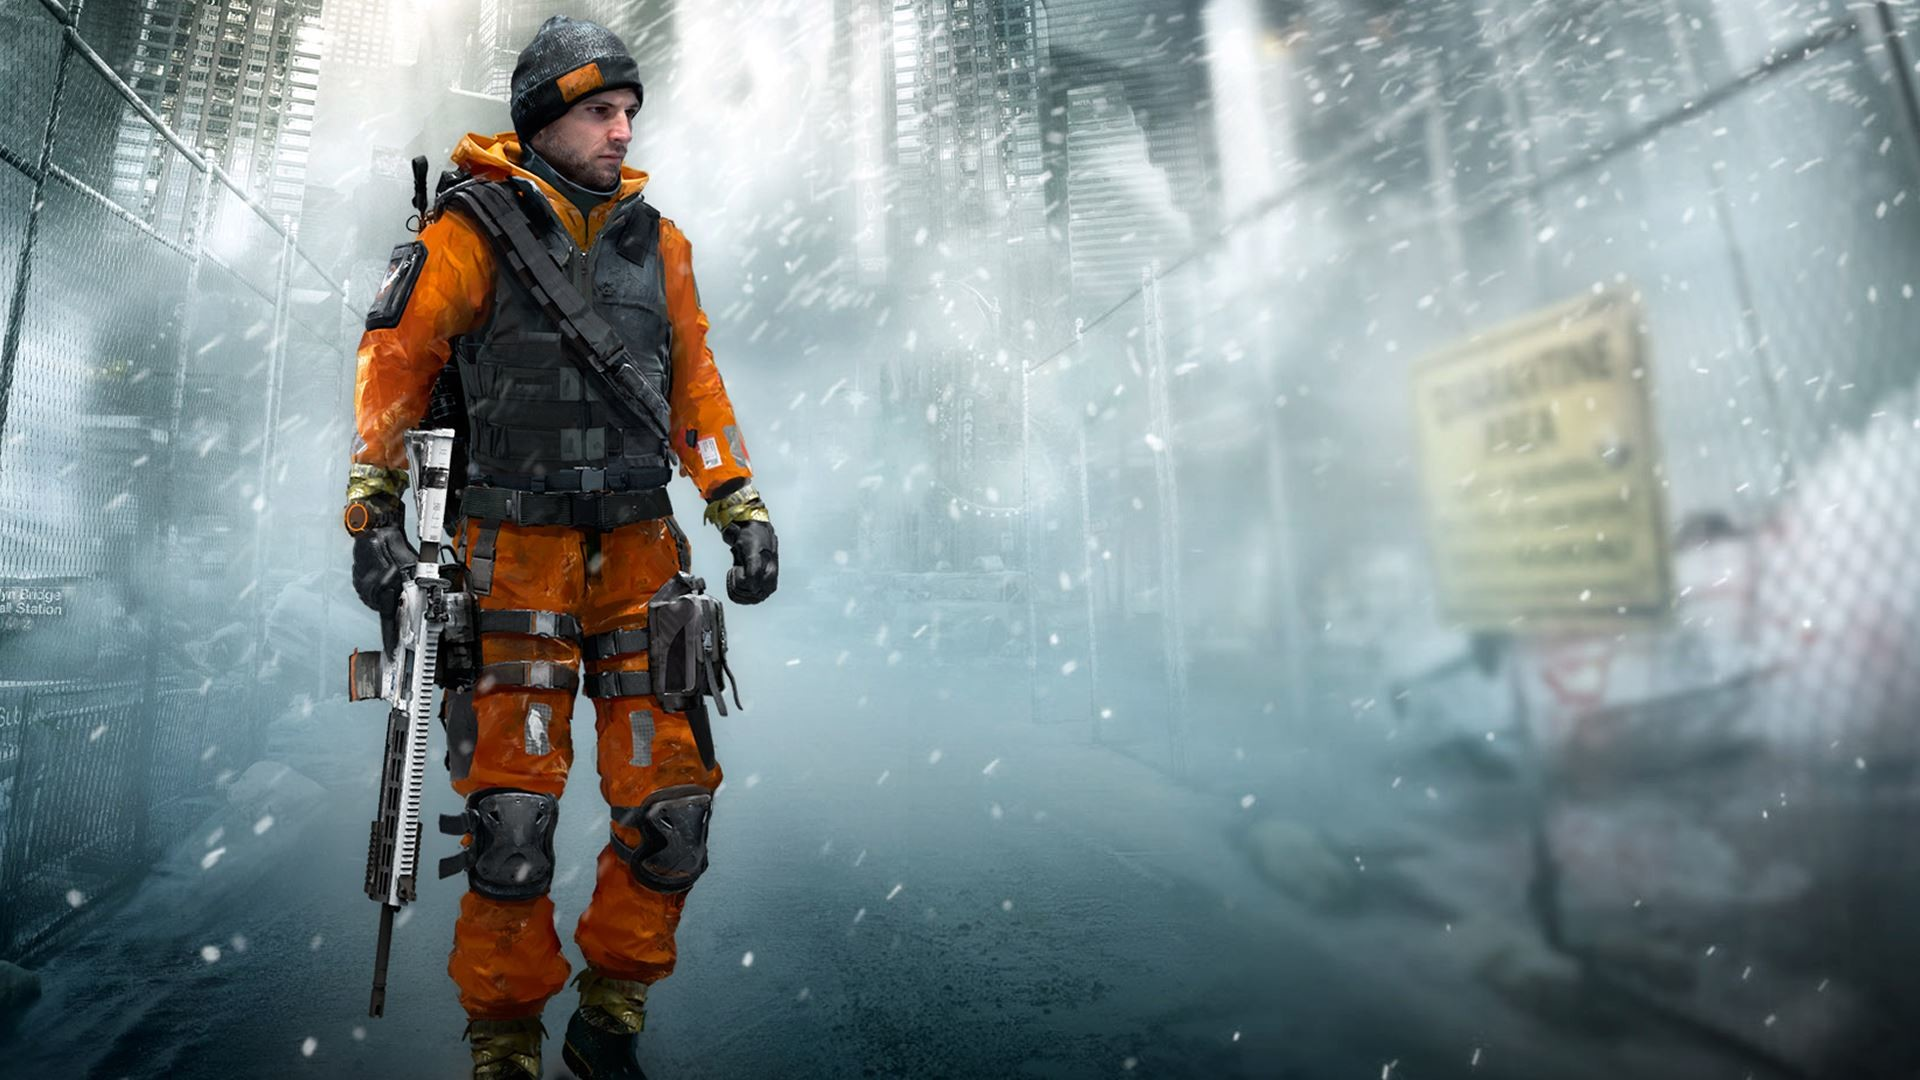 division wallpapers photos and desktop backgrounds for mobile up 1920×1080